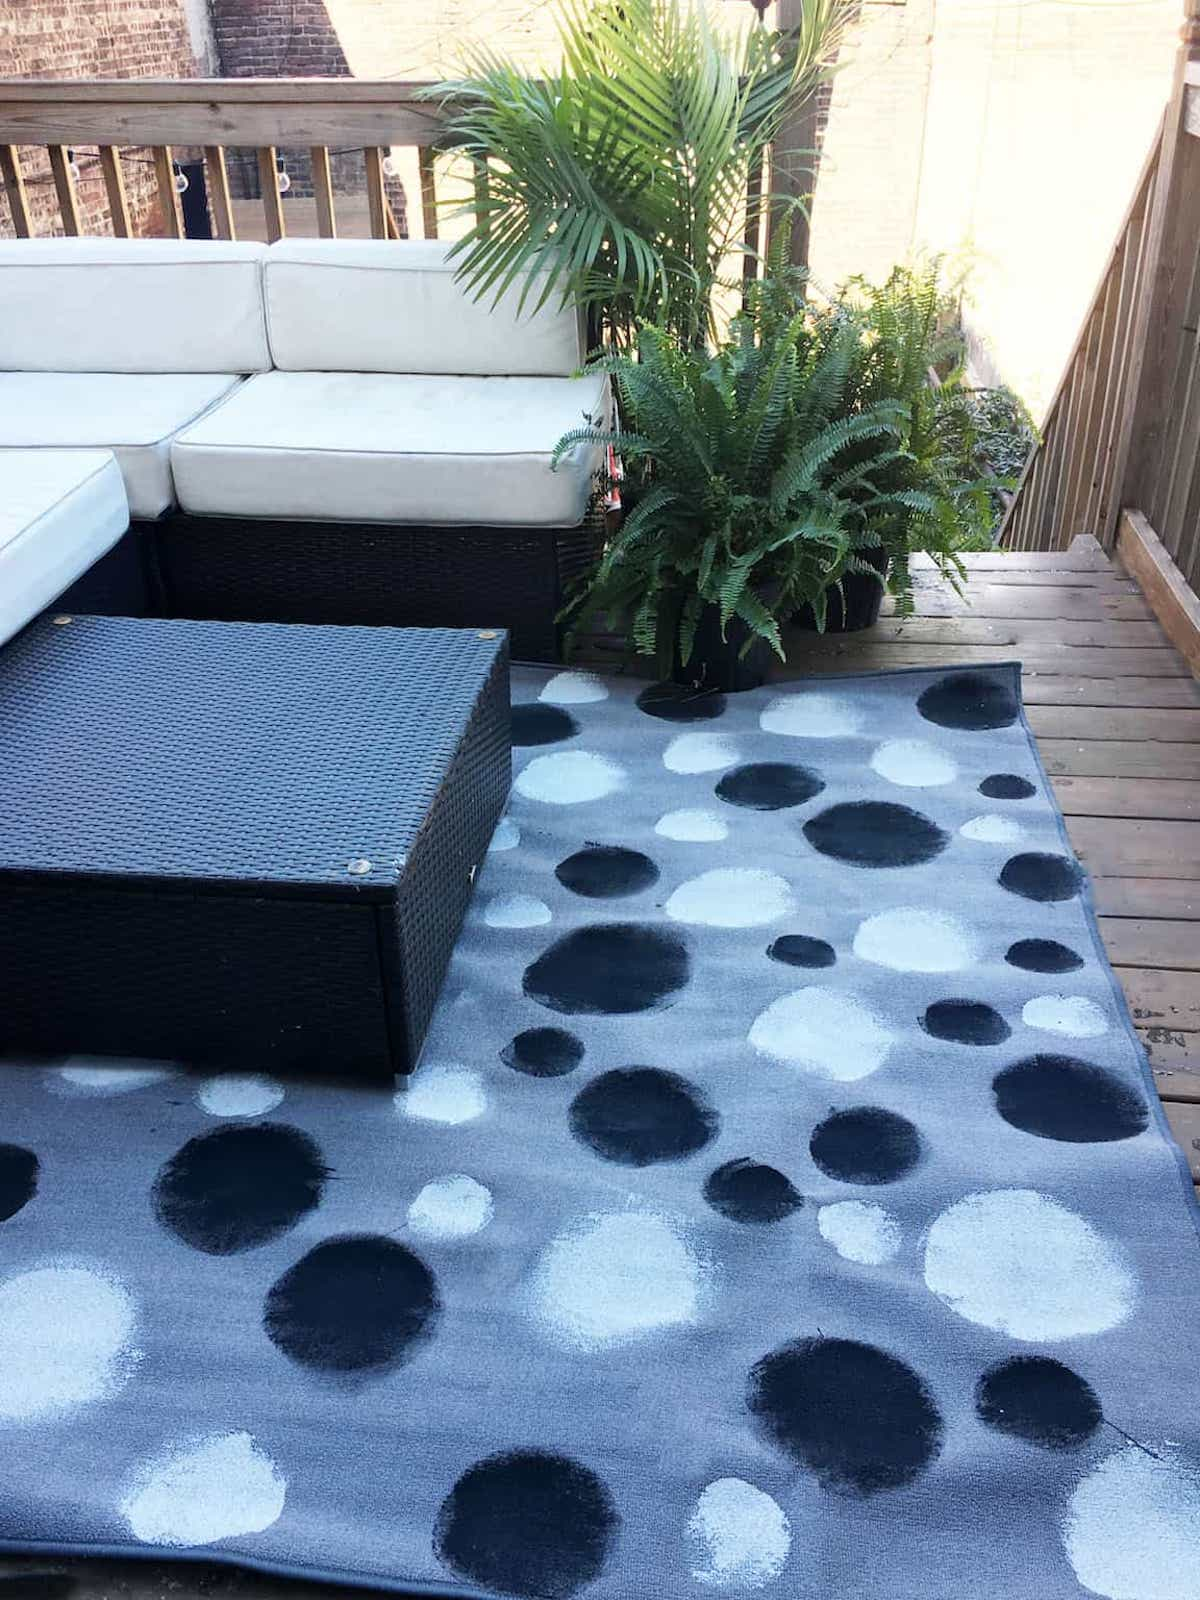 DIY Outdoor Rug With Painted Black And White Dots (View 6 of 15)